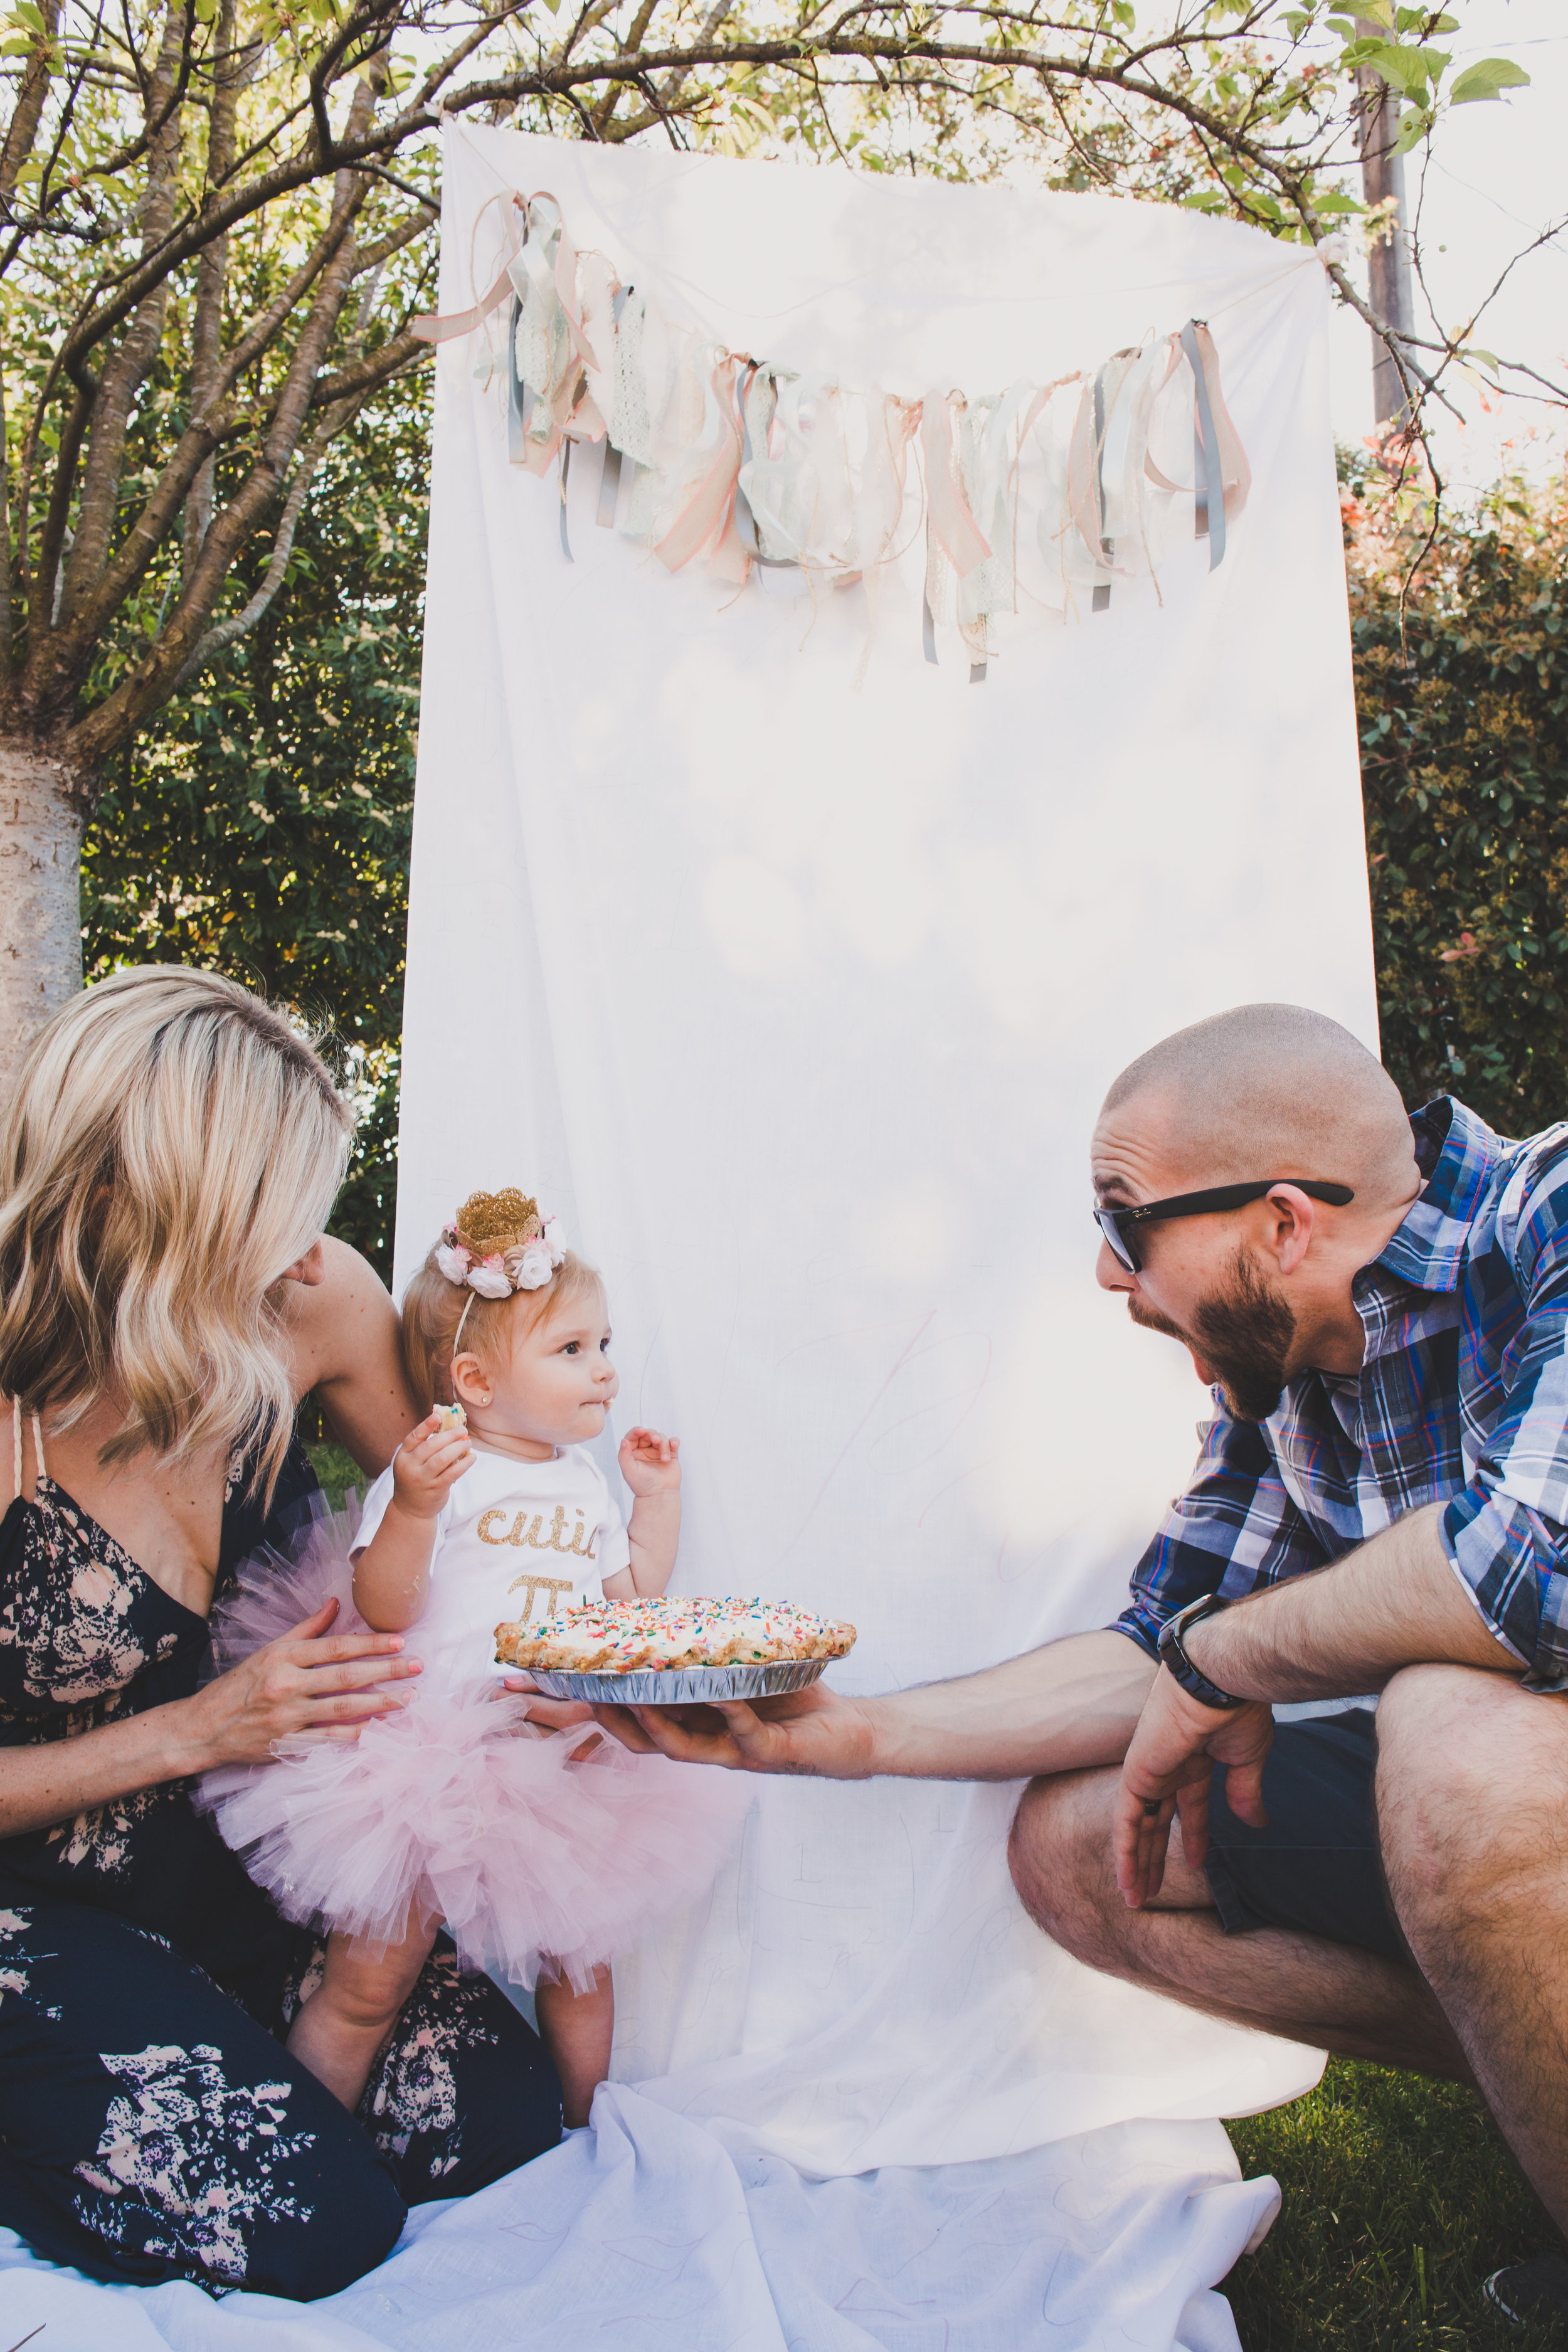 First Birthday Pie Smash - First Birthday Party Ideas - A Vintage Chic Pi Day Themed 1st Birthday Party   Ava's First Birthday